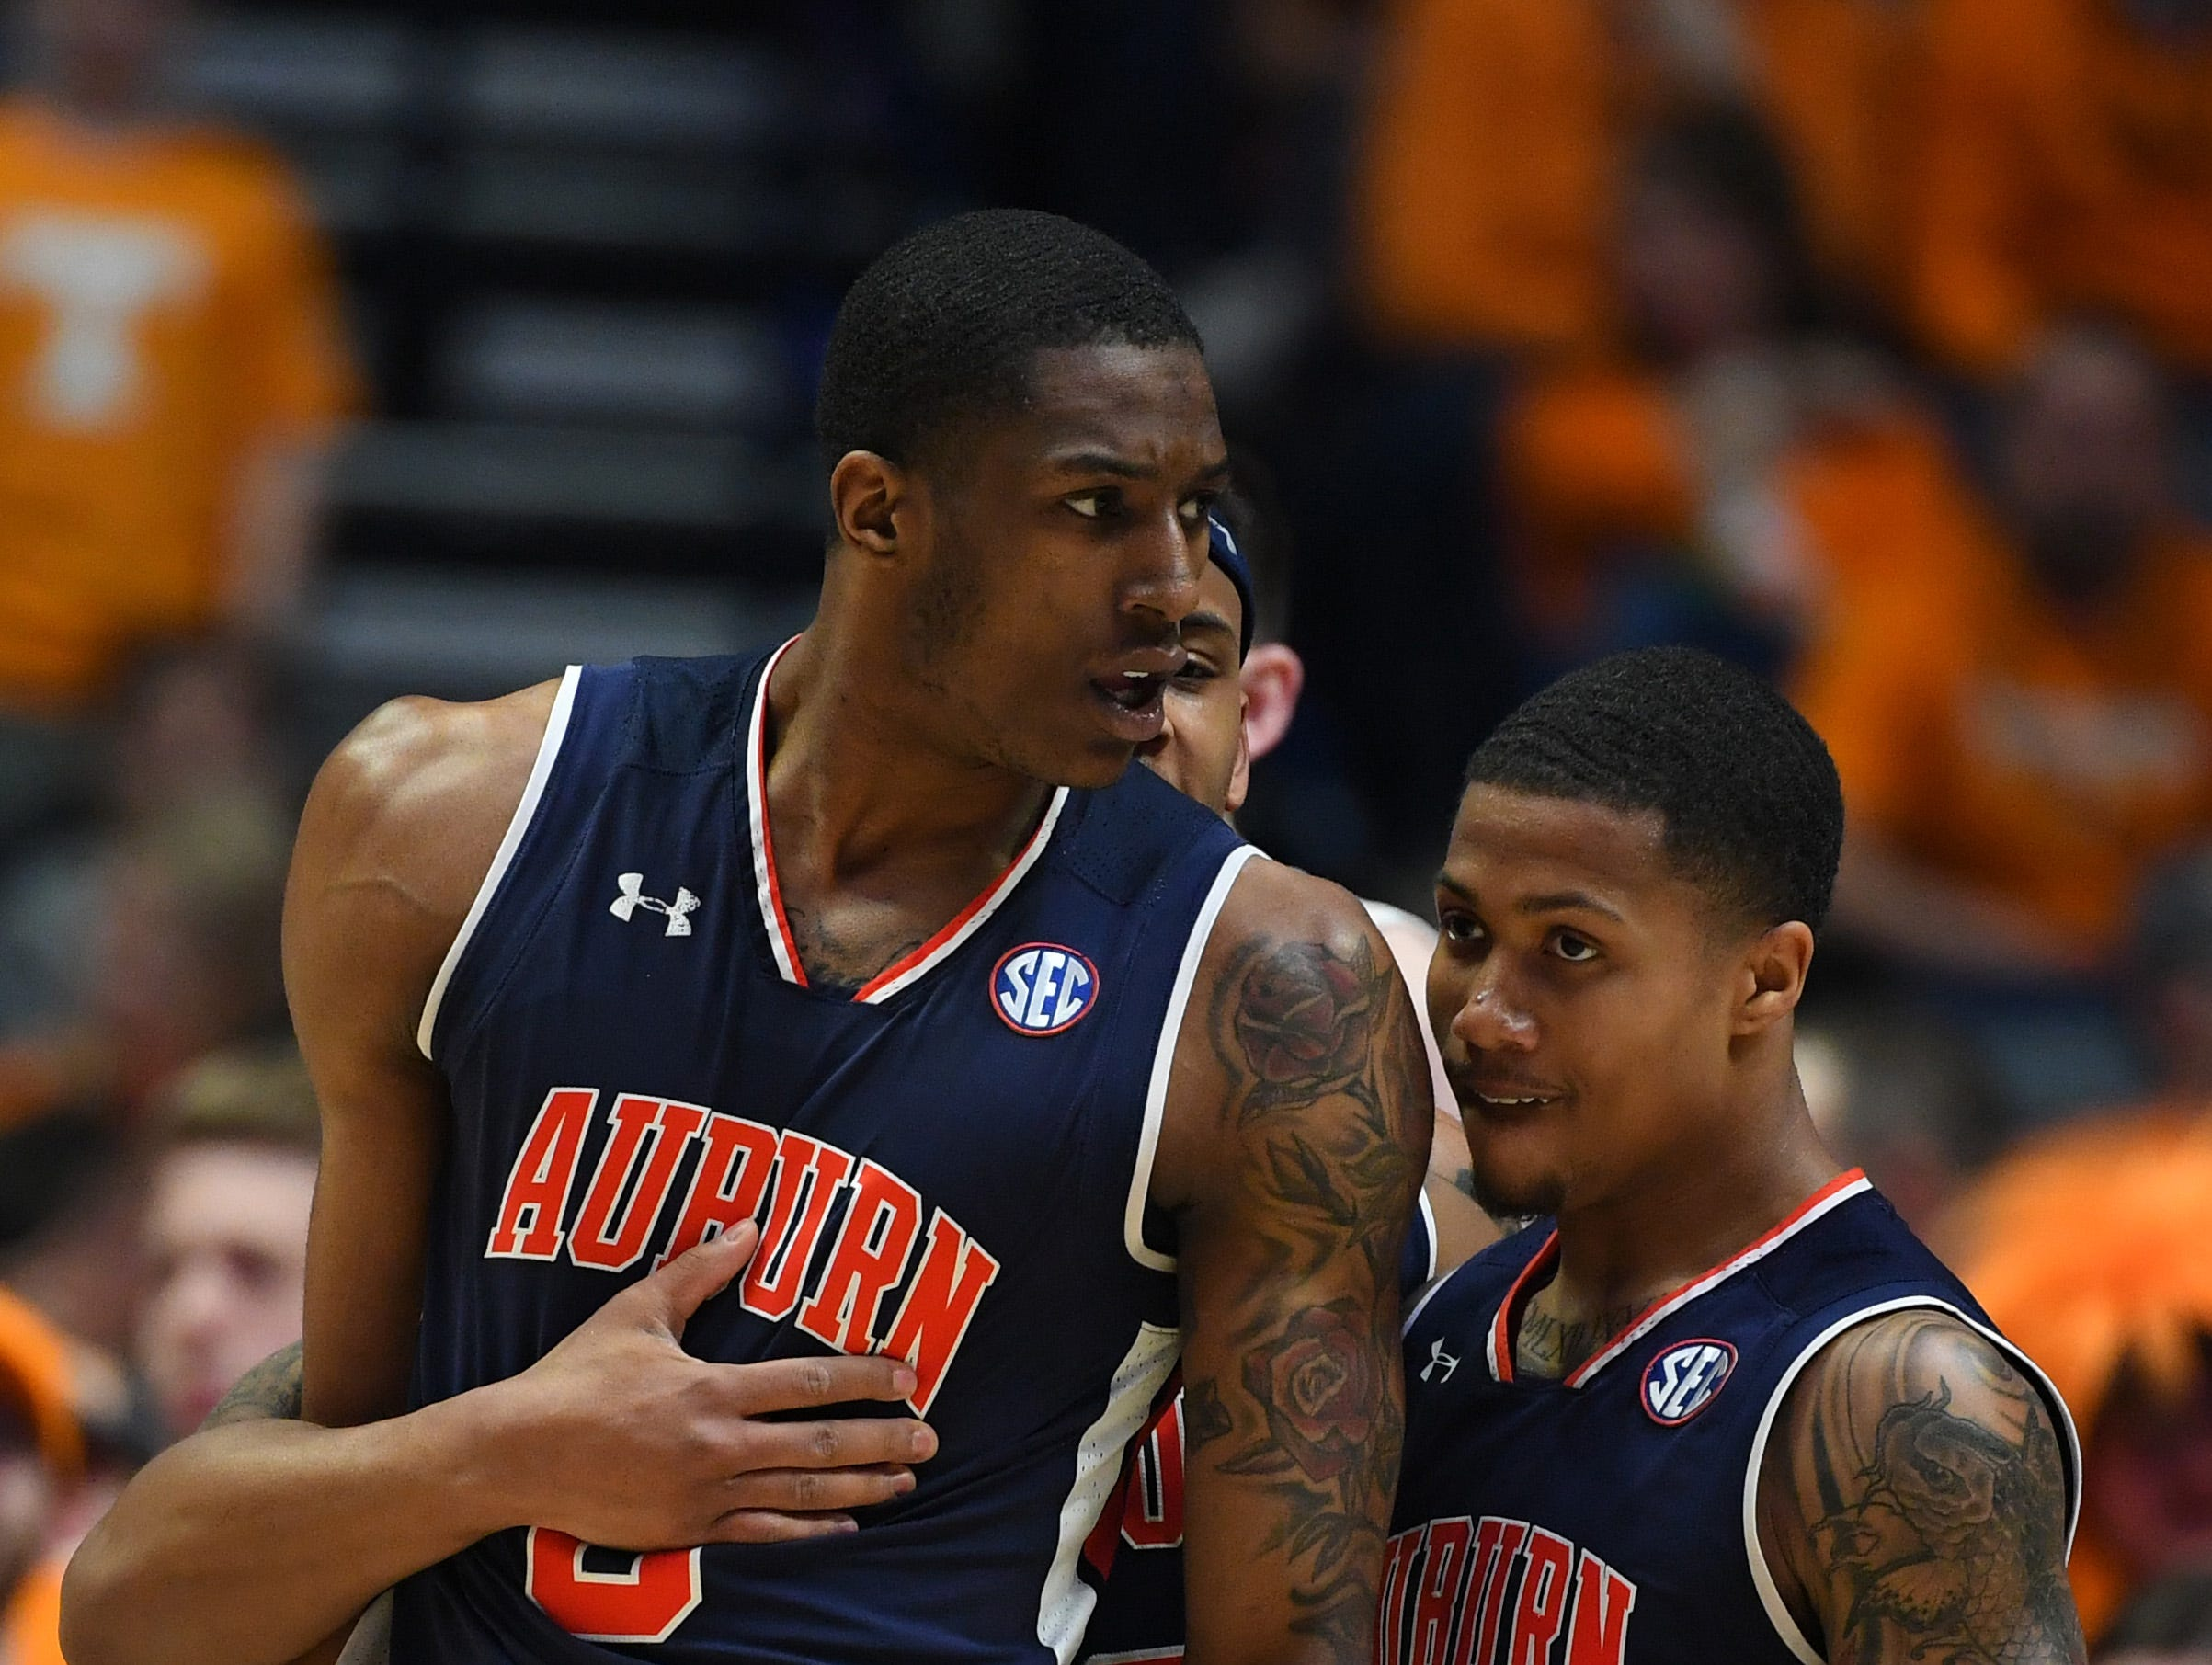 Mar 17, 2019; Nashville, TN, USA; Auburn Tigers forward Horace Spencer (0) and Auburn Tigers guard J'Von McCormick (12) after a foul against the Tennessee Volunteers during the first half in the SEC conference tournament championship game at Bridgestone Arena. Mandatory Credit: Christopher Hanewinckel-USA TODAY Sports